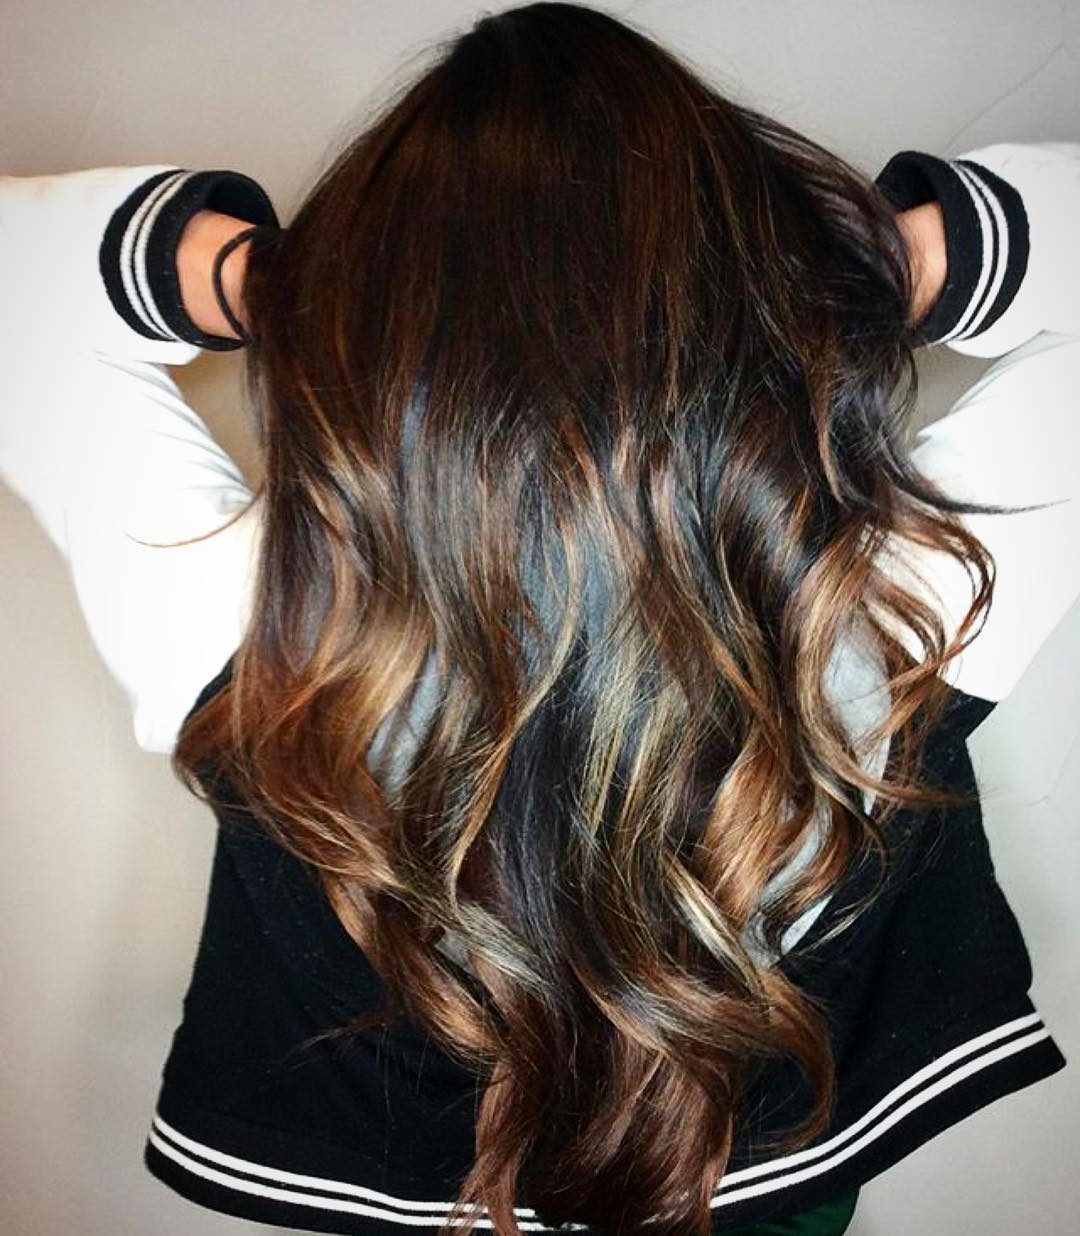 Hairstyle Guru Regarding Most Recent Balayage Hairstyles For Long Layers (View 8 of 20)